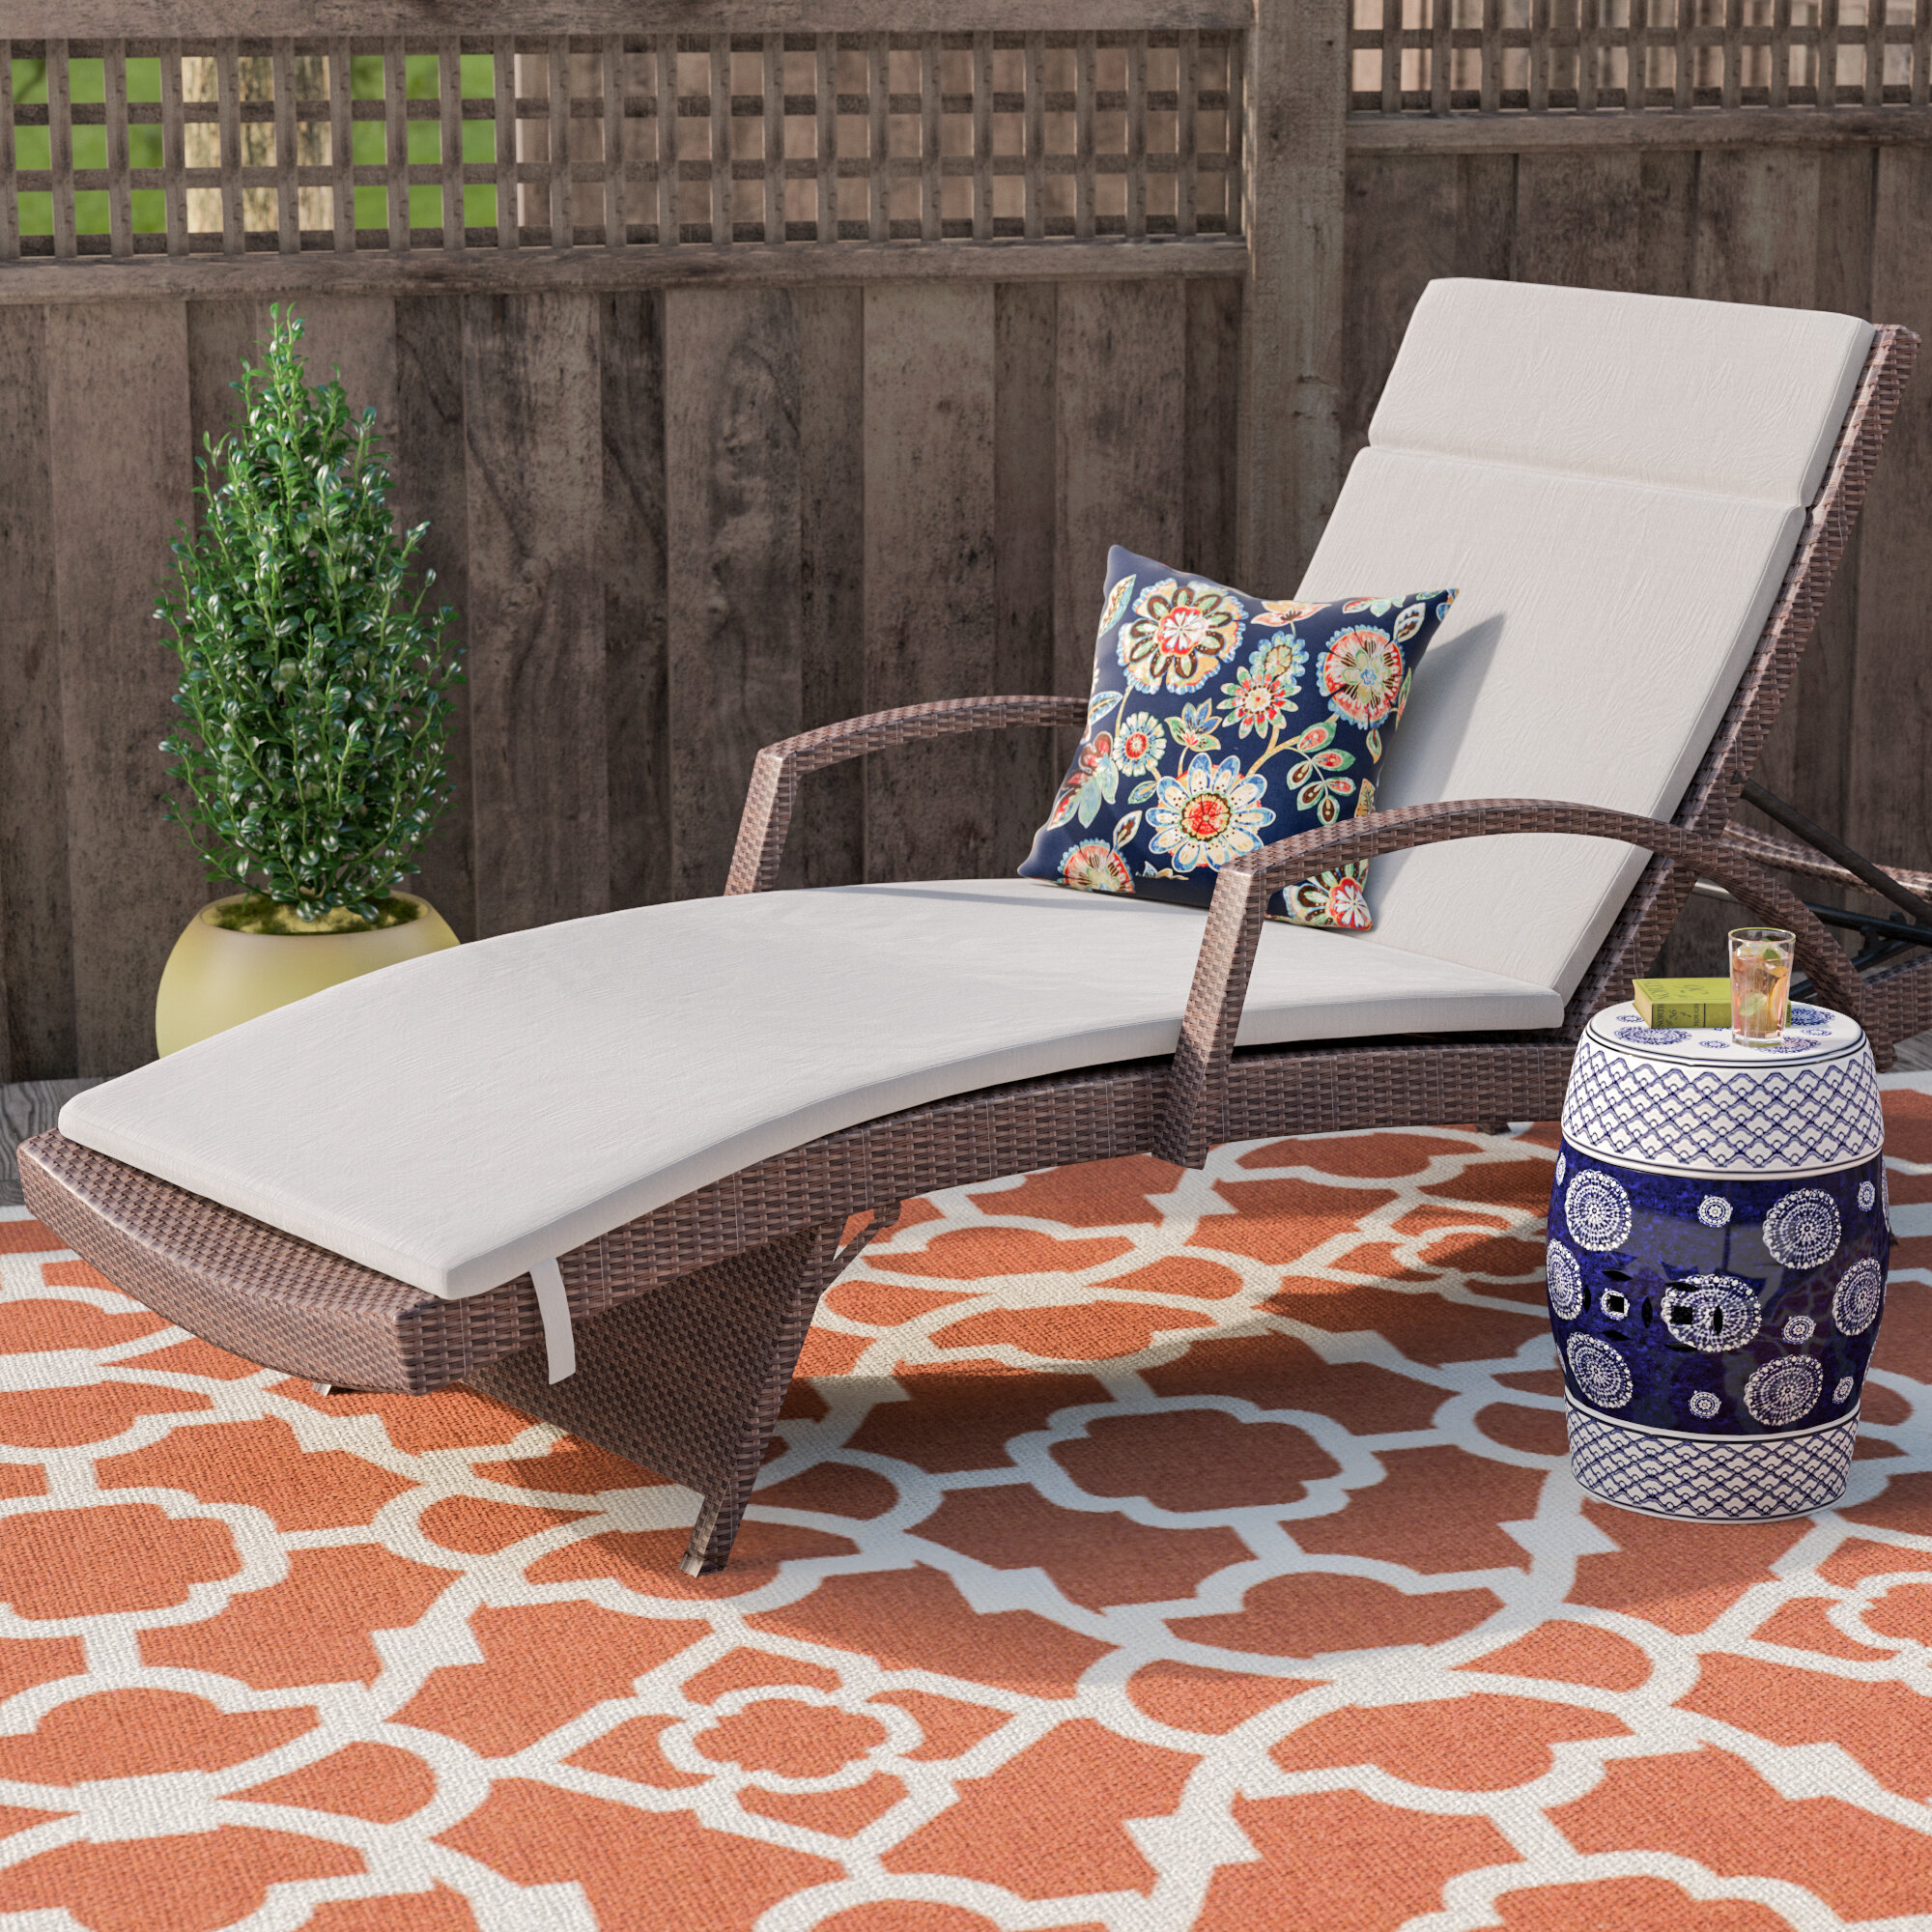 appealing exterior sale of also with transform perfect for sunbrella home cushions fabric on decor lounge chaise enchanting your costco